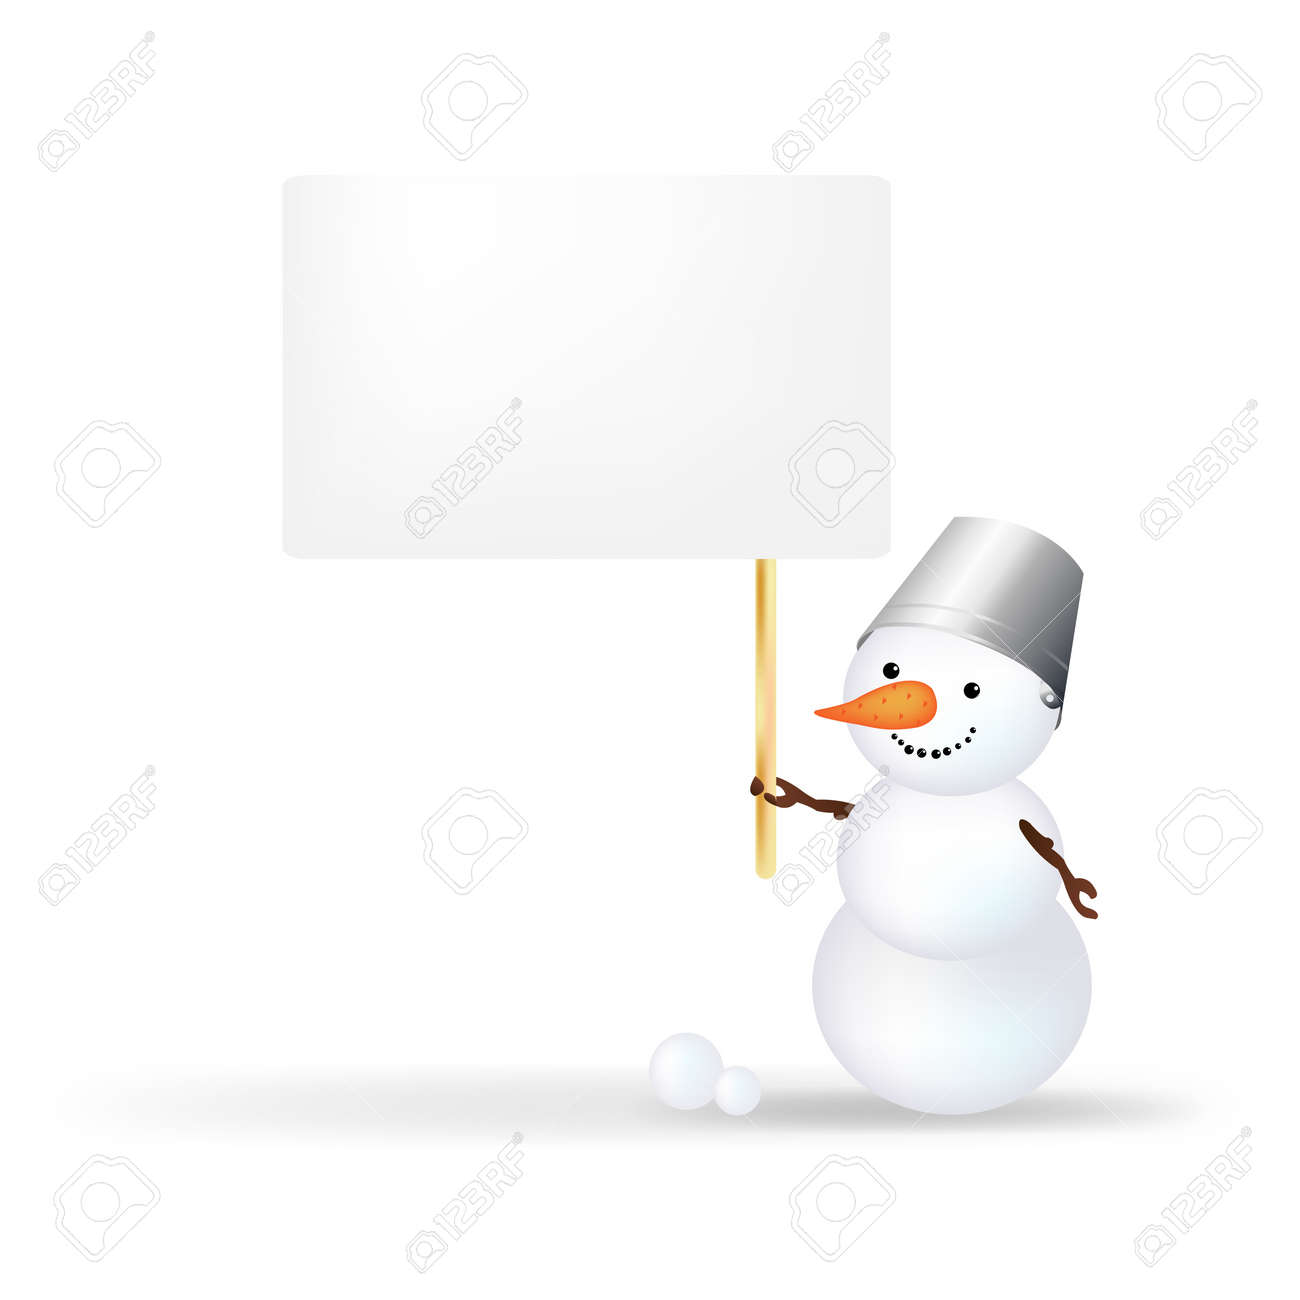 Christmas Snowman With Announcement, Isolated On White Background With Gradient Mesh Stock Vector - 16815872